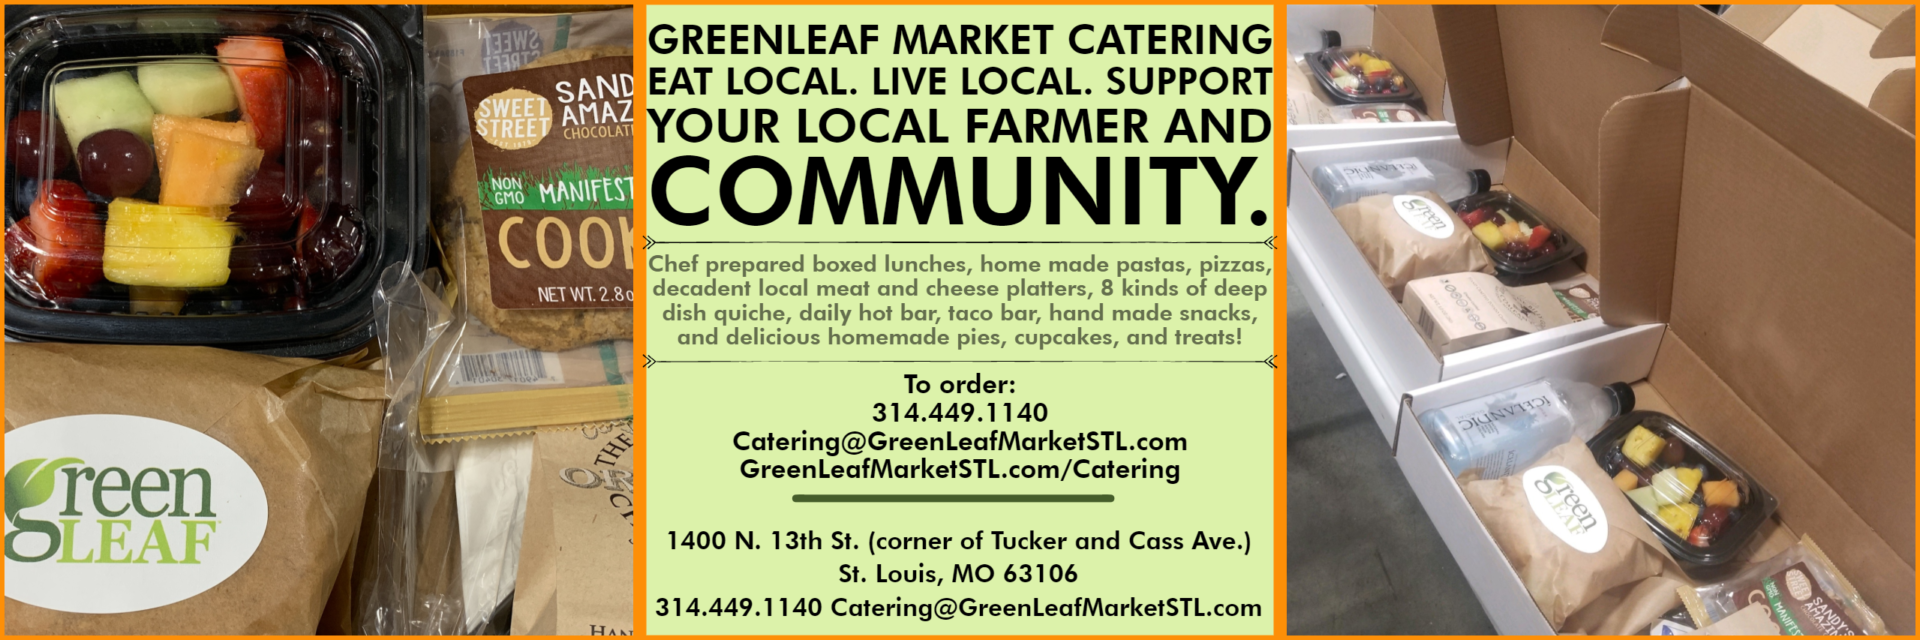 GreenLeaf Market Catering